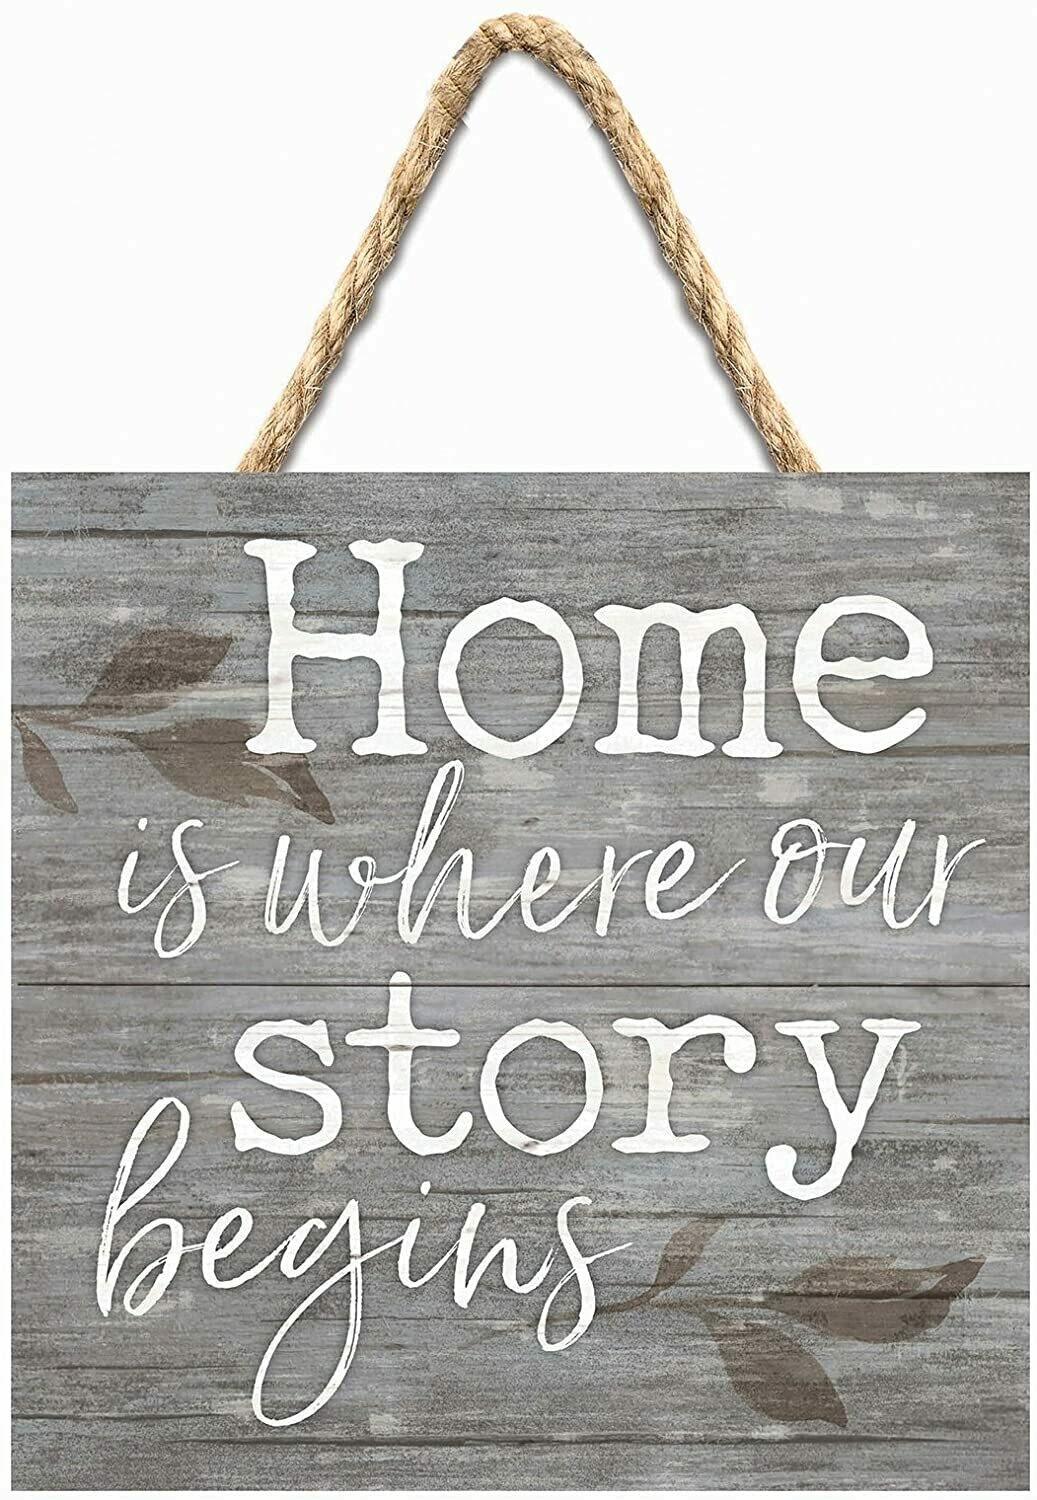 Wood Word Pallet String Sign - Home is where our Story Begins - 7 x 7 inches - P.G. Dunn